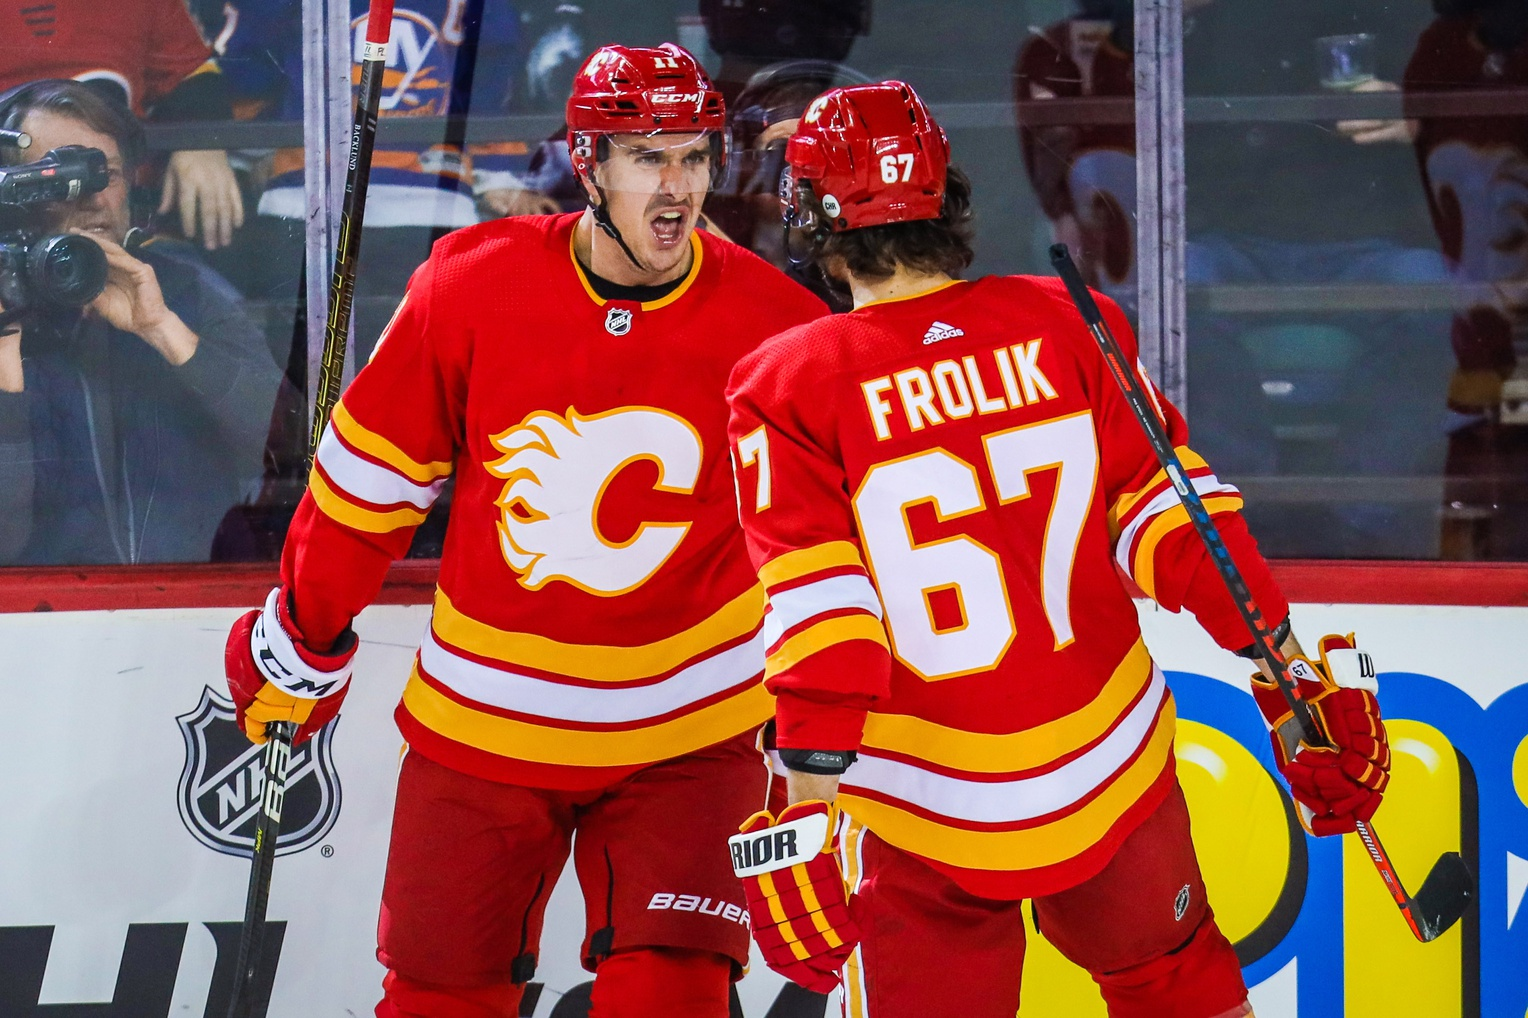 d1e0db37d6f Flames will wear retro home jerseys in the playoffs – Flamesnation